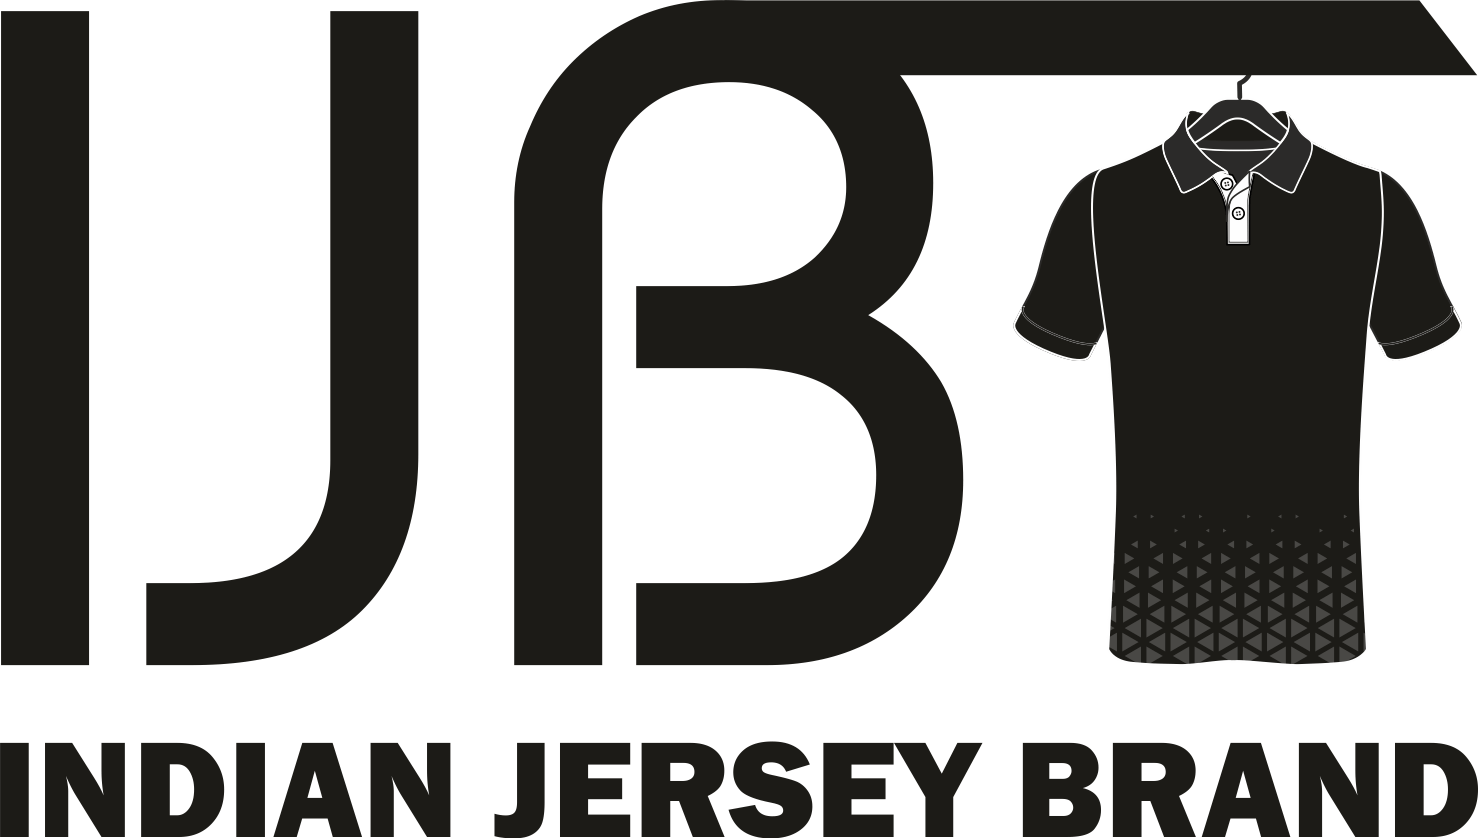 Indian Jersey Brand A Revolutionary Jersey Brand To Launch Its Online Store This Fall Free Press News Release Writing Distribution Submission